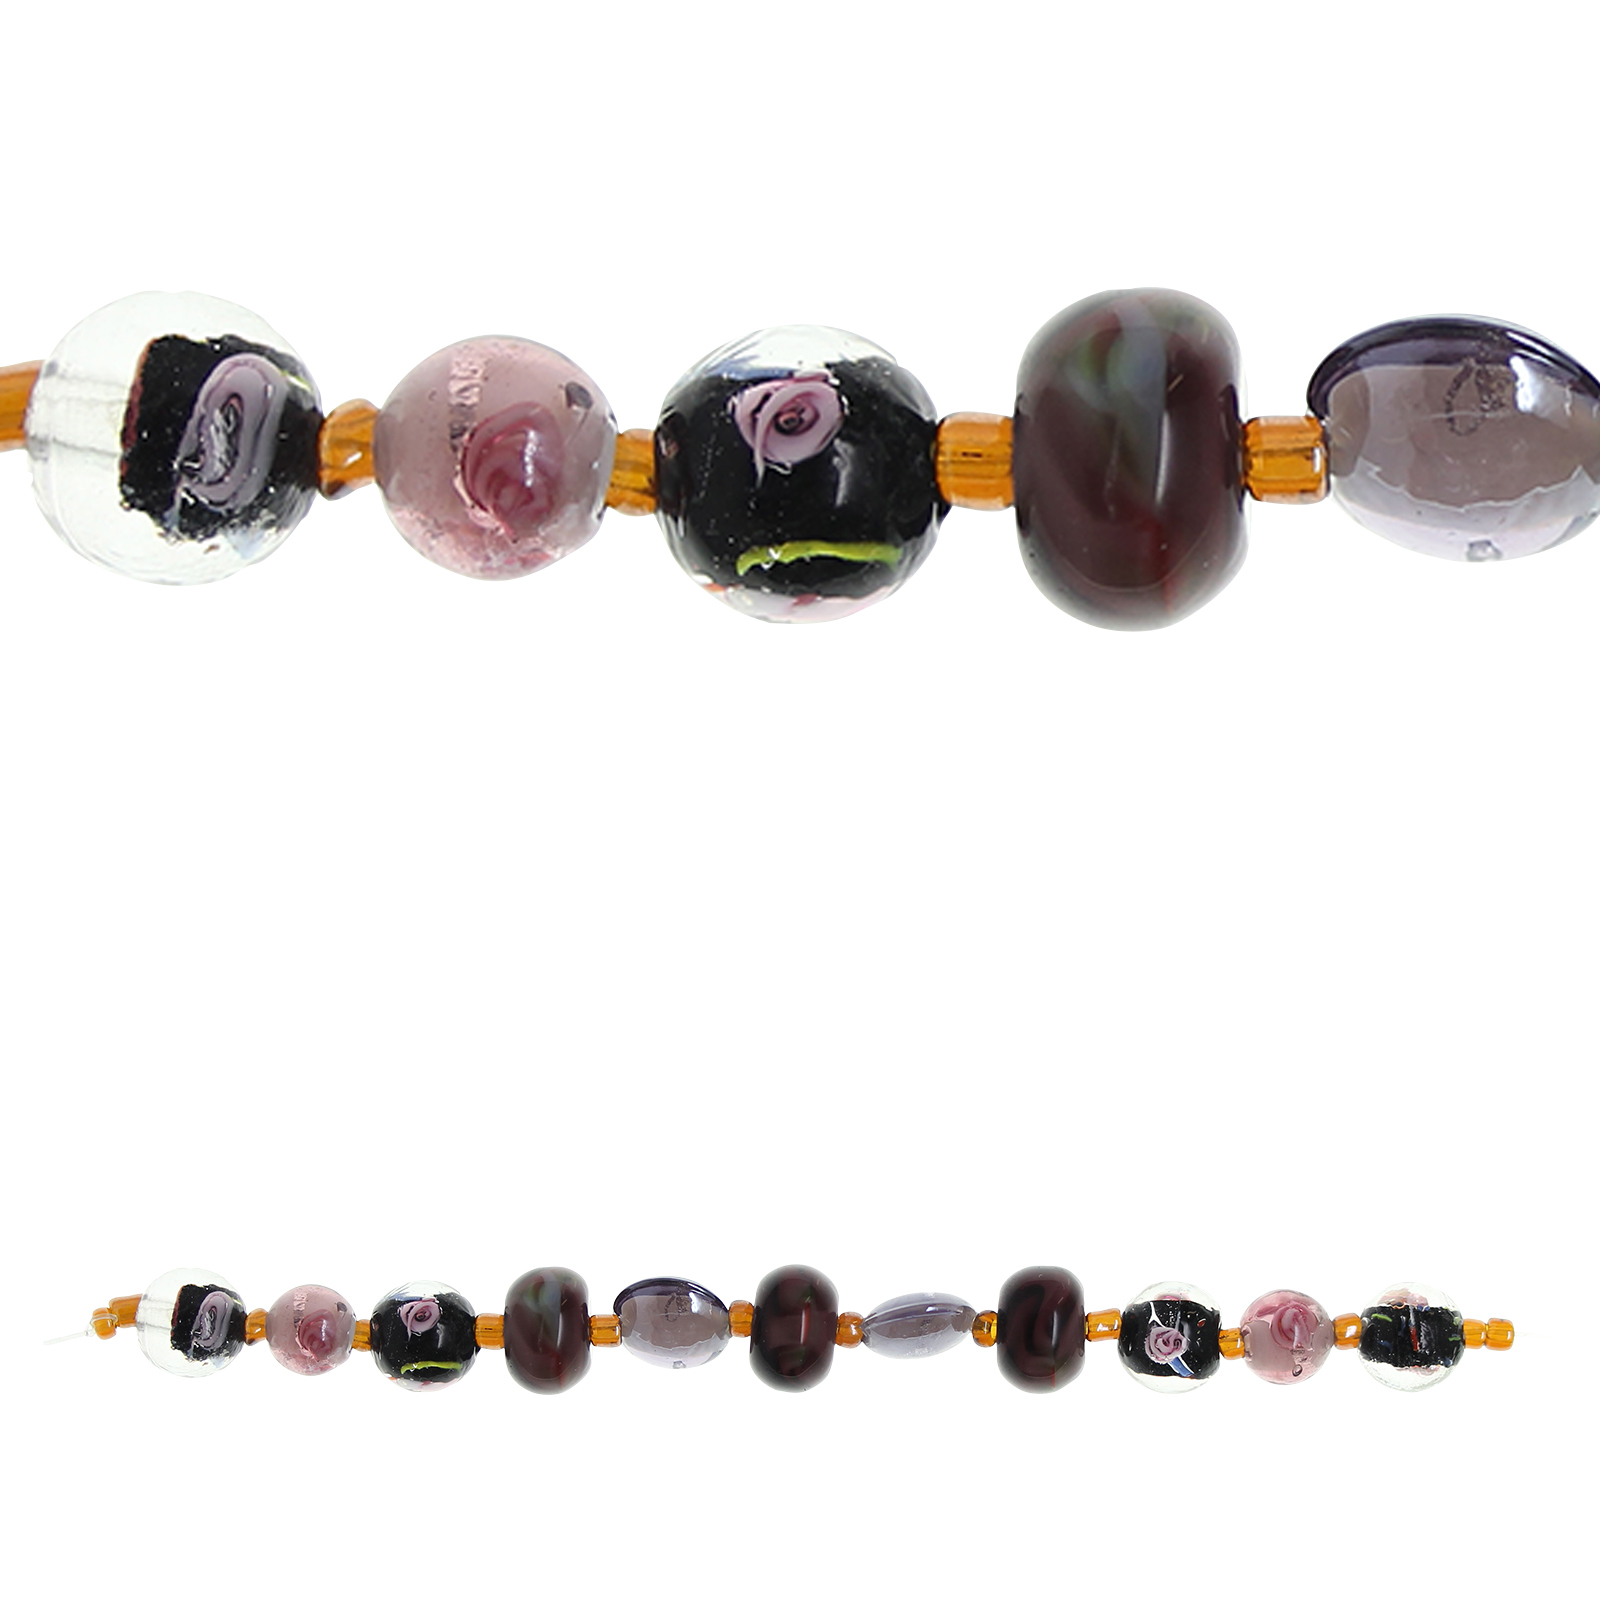 bead gallery small rondelle lampwork glass beads amethyst